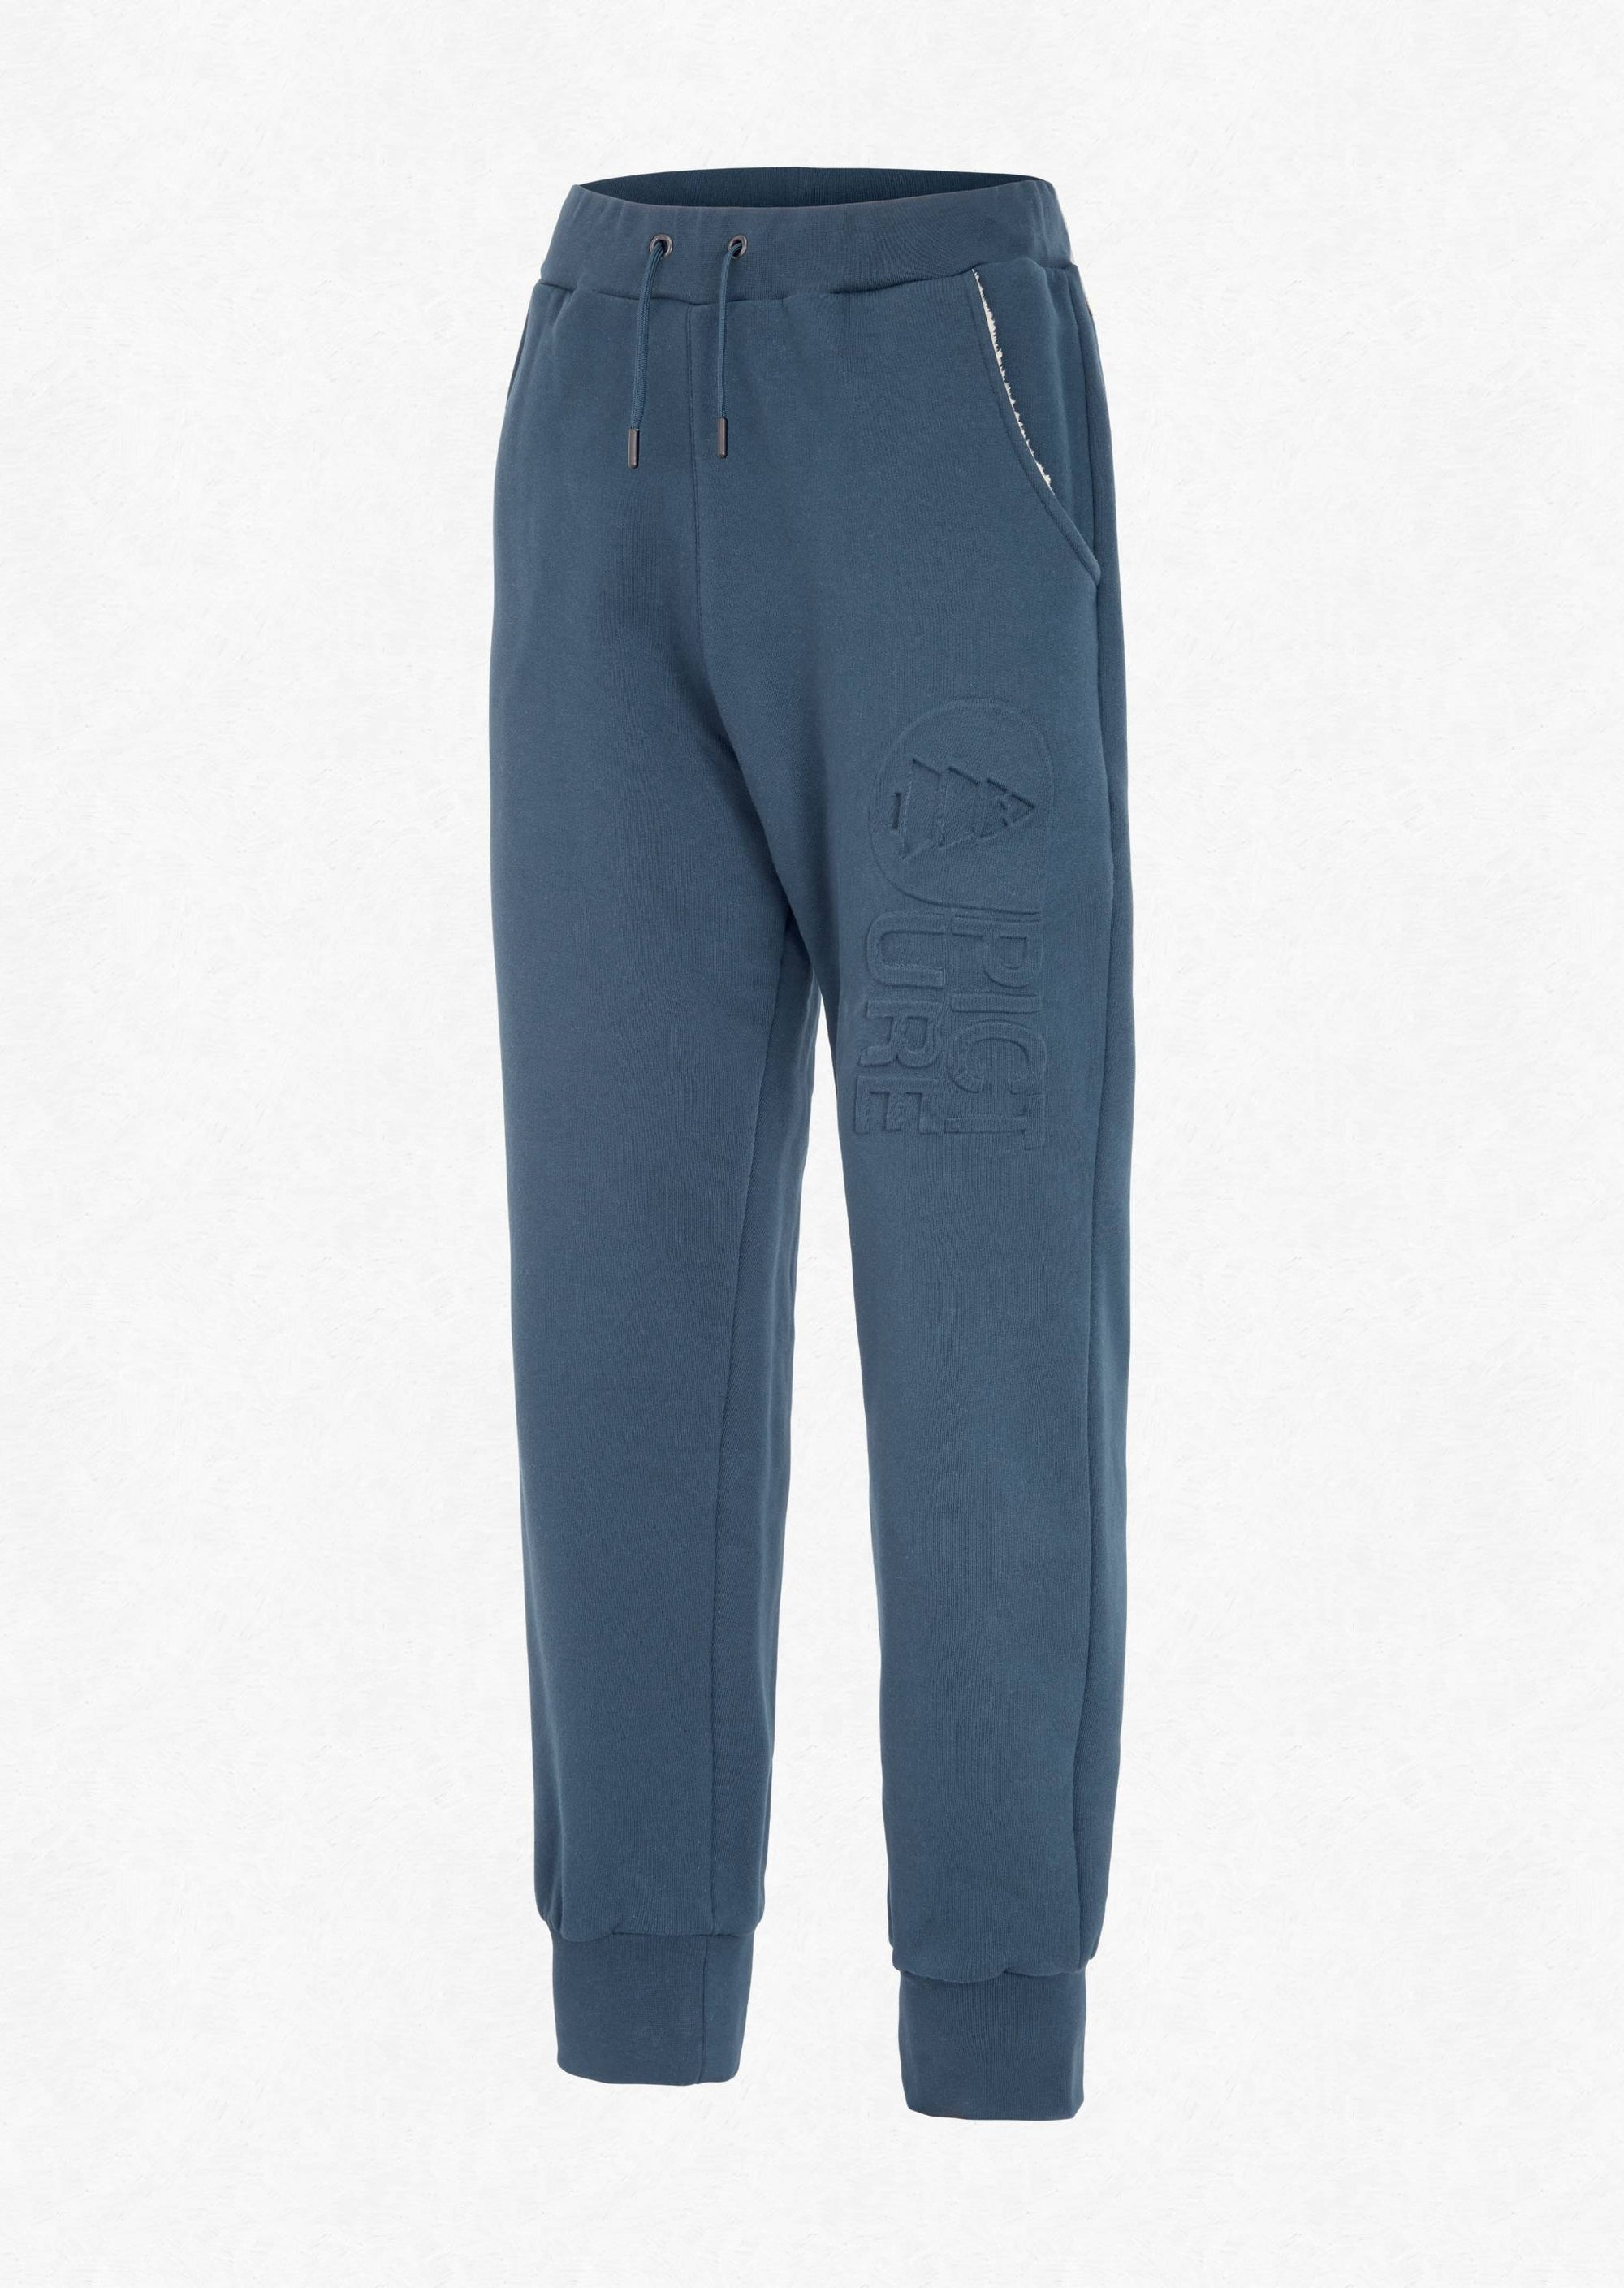 Picture Organic - M's Chill Pant - Weekendbee - sustainable sportswear